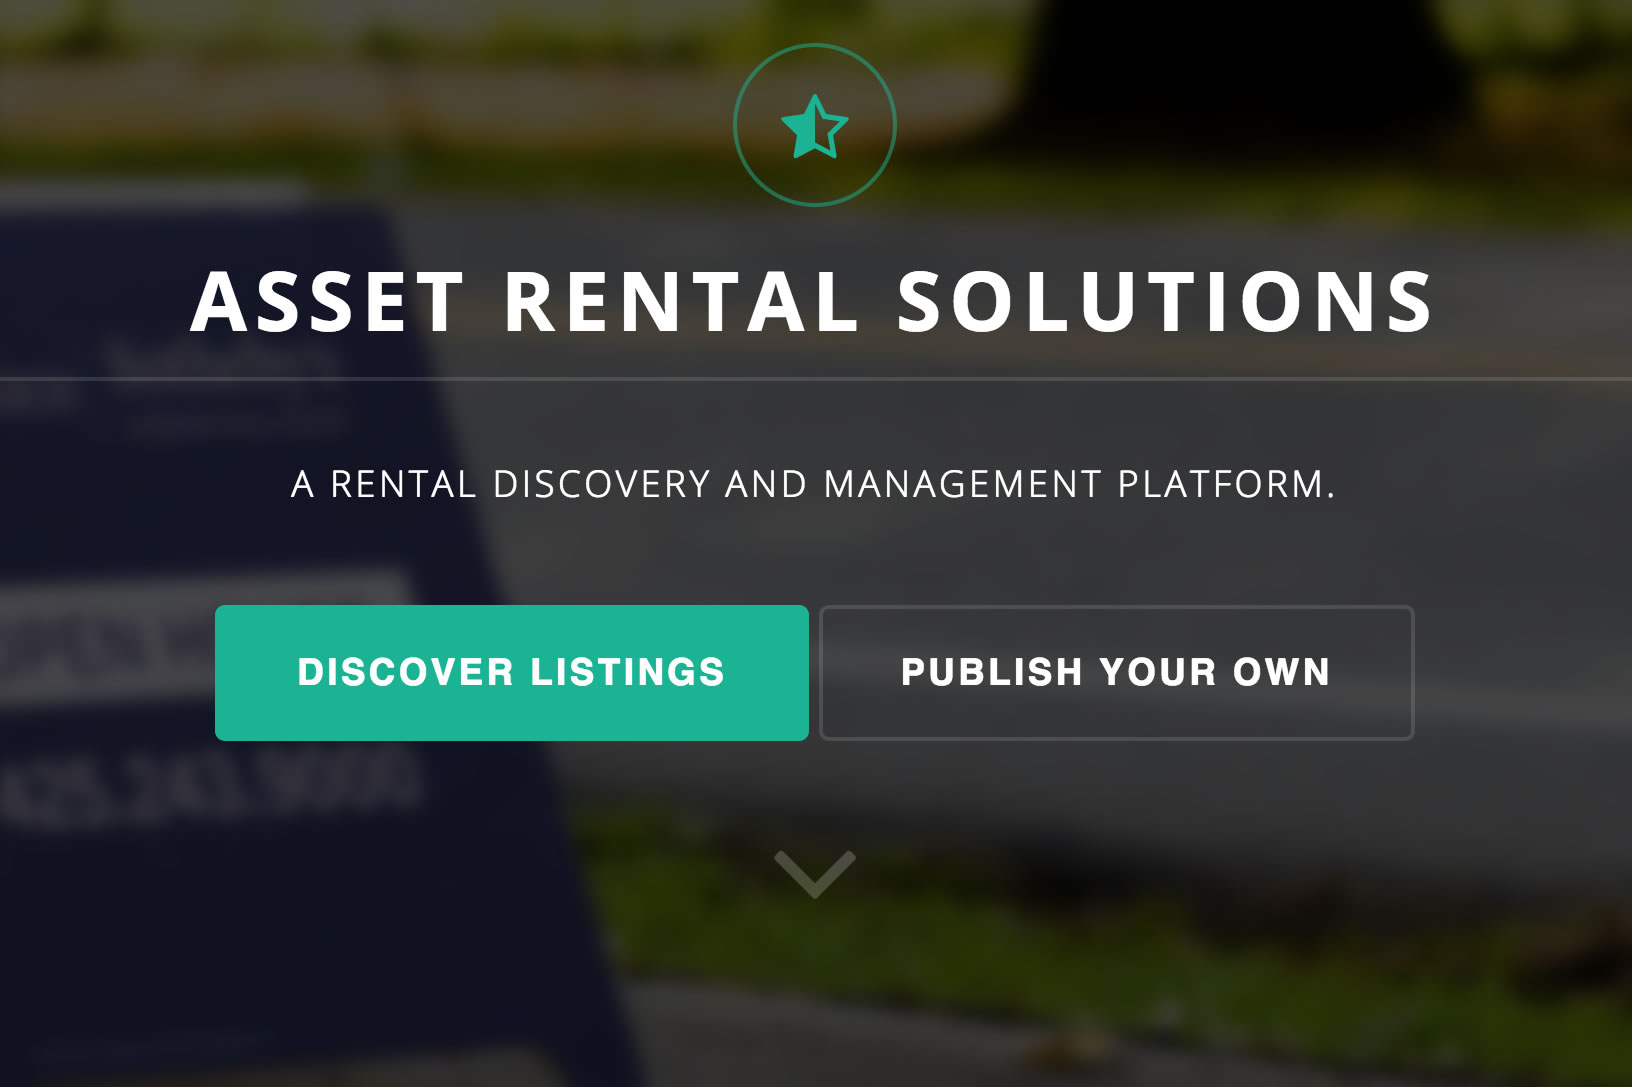 A Rental Discovery & Management Platform